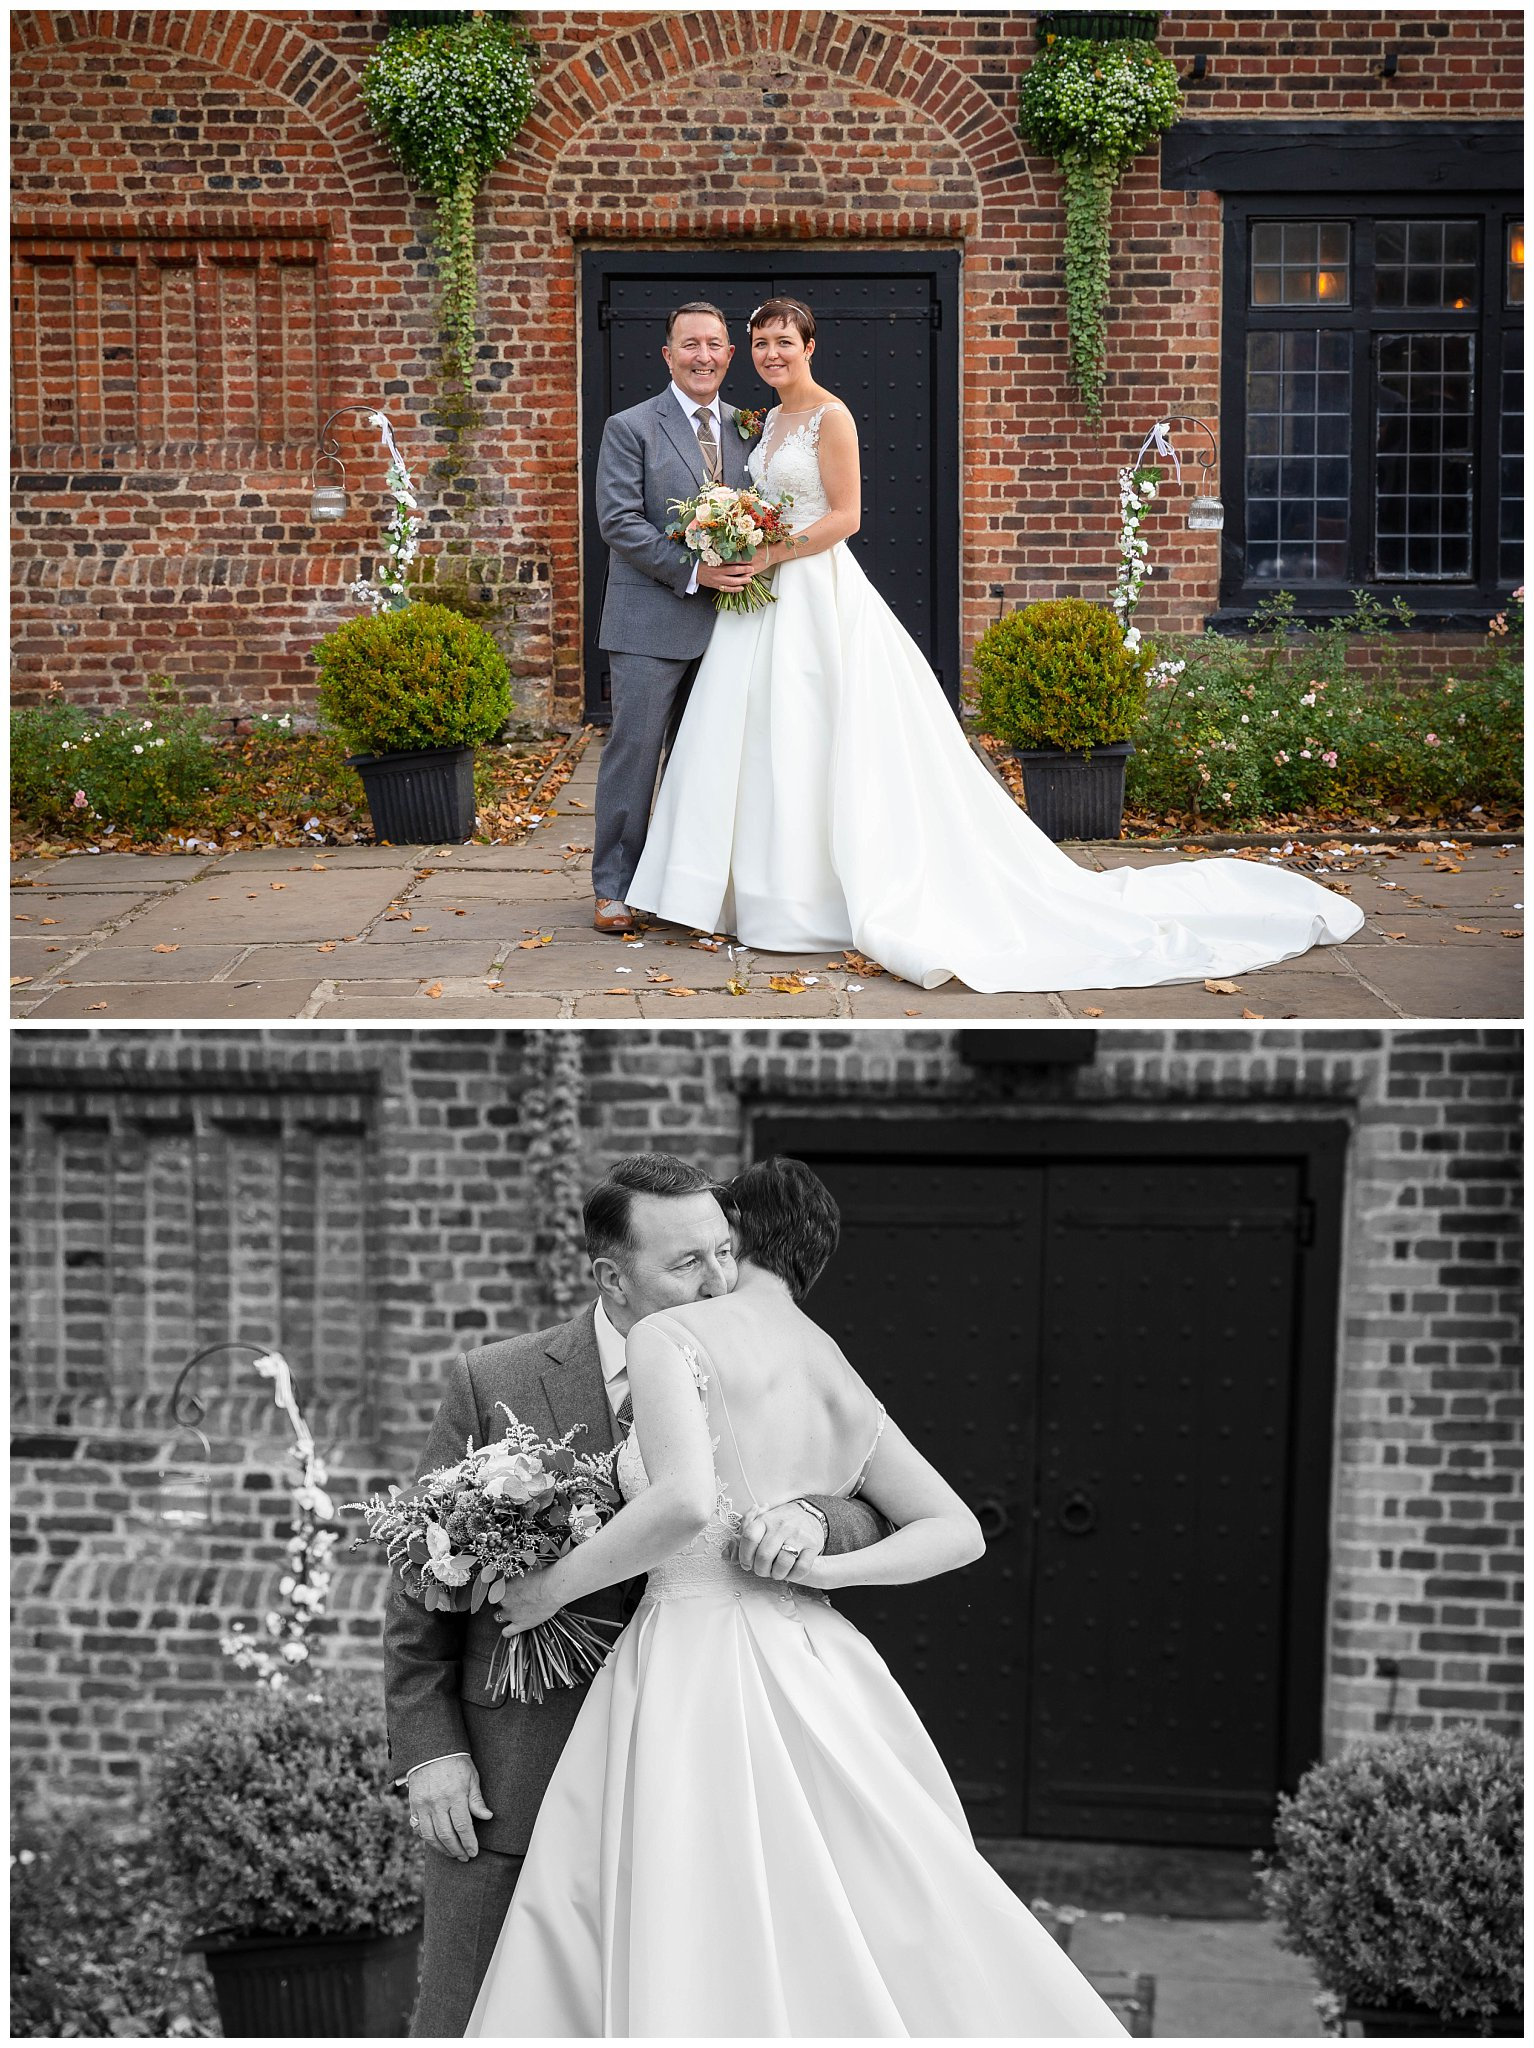 wedding atThe tudor barn eltham